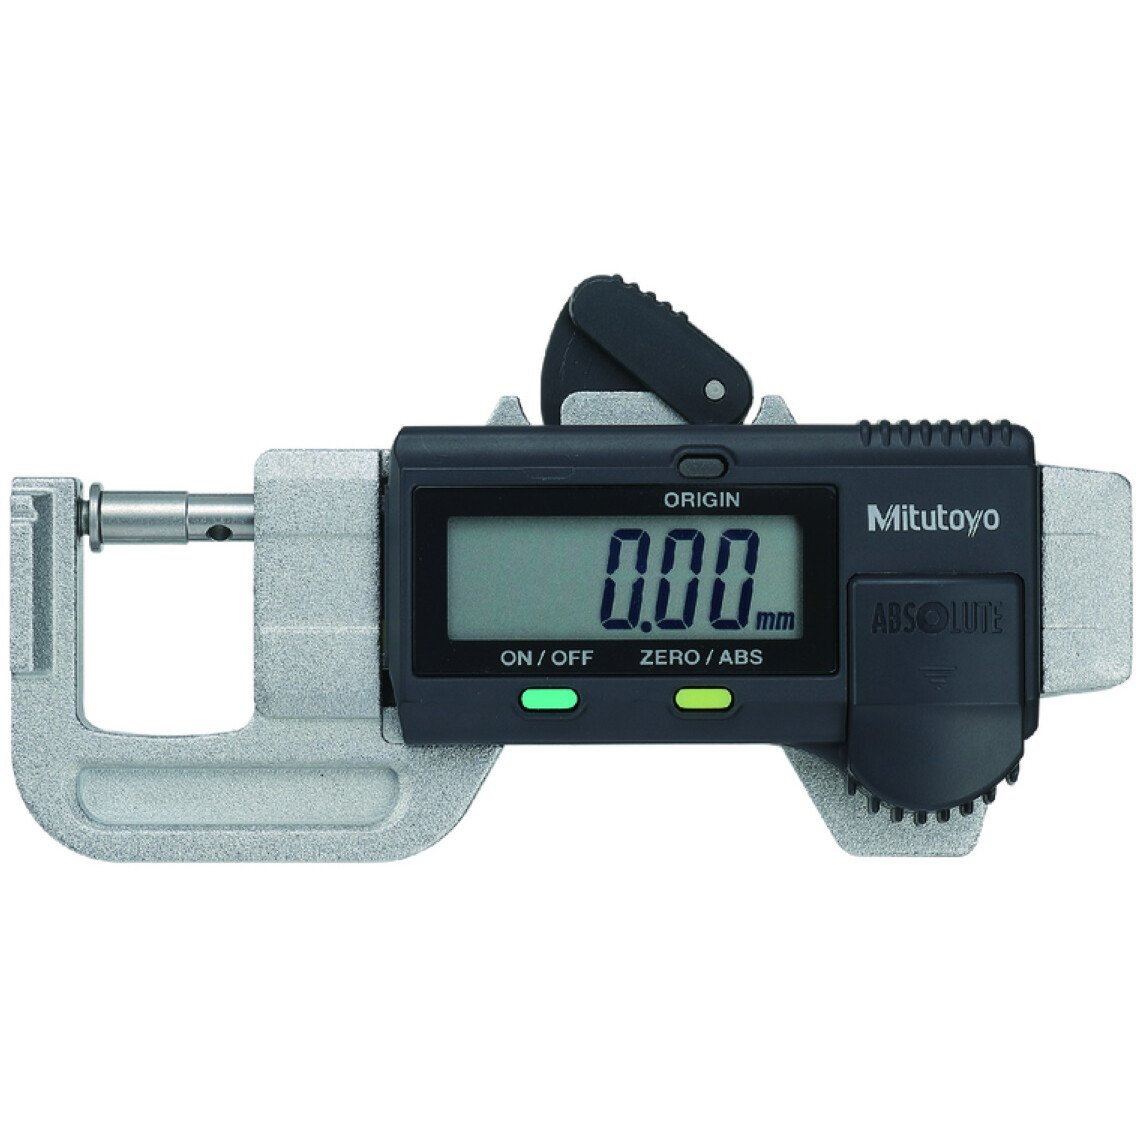 Mitutoyo 700-118 Series 7 Digimatic Quick Mini Thickness Gauge